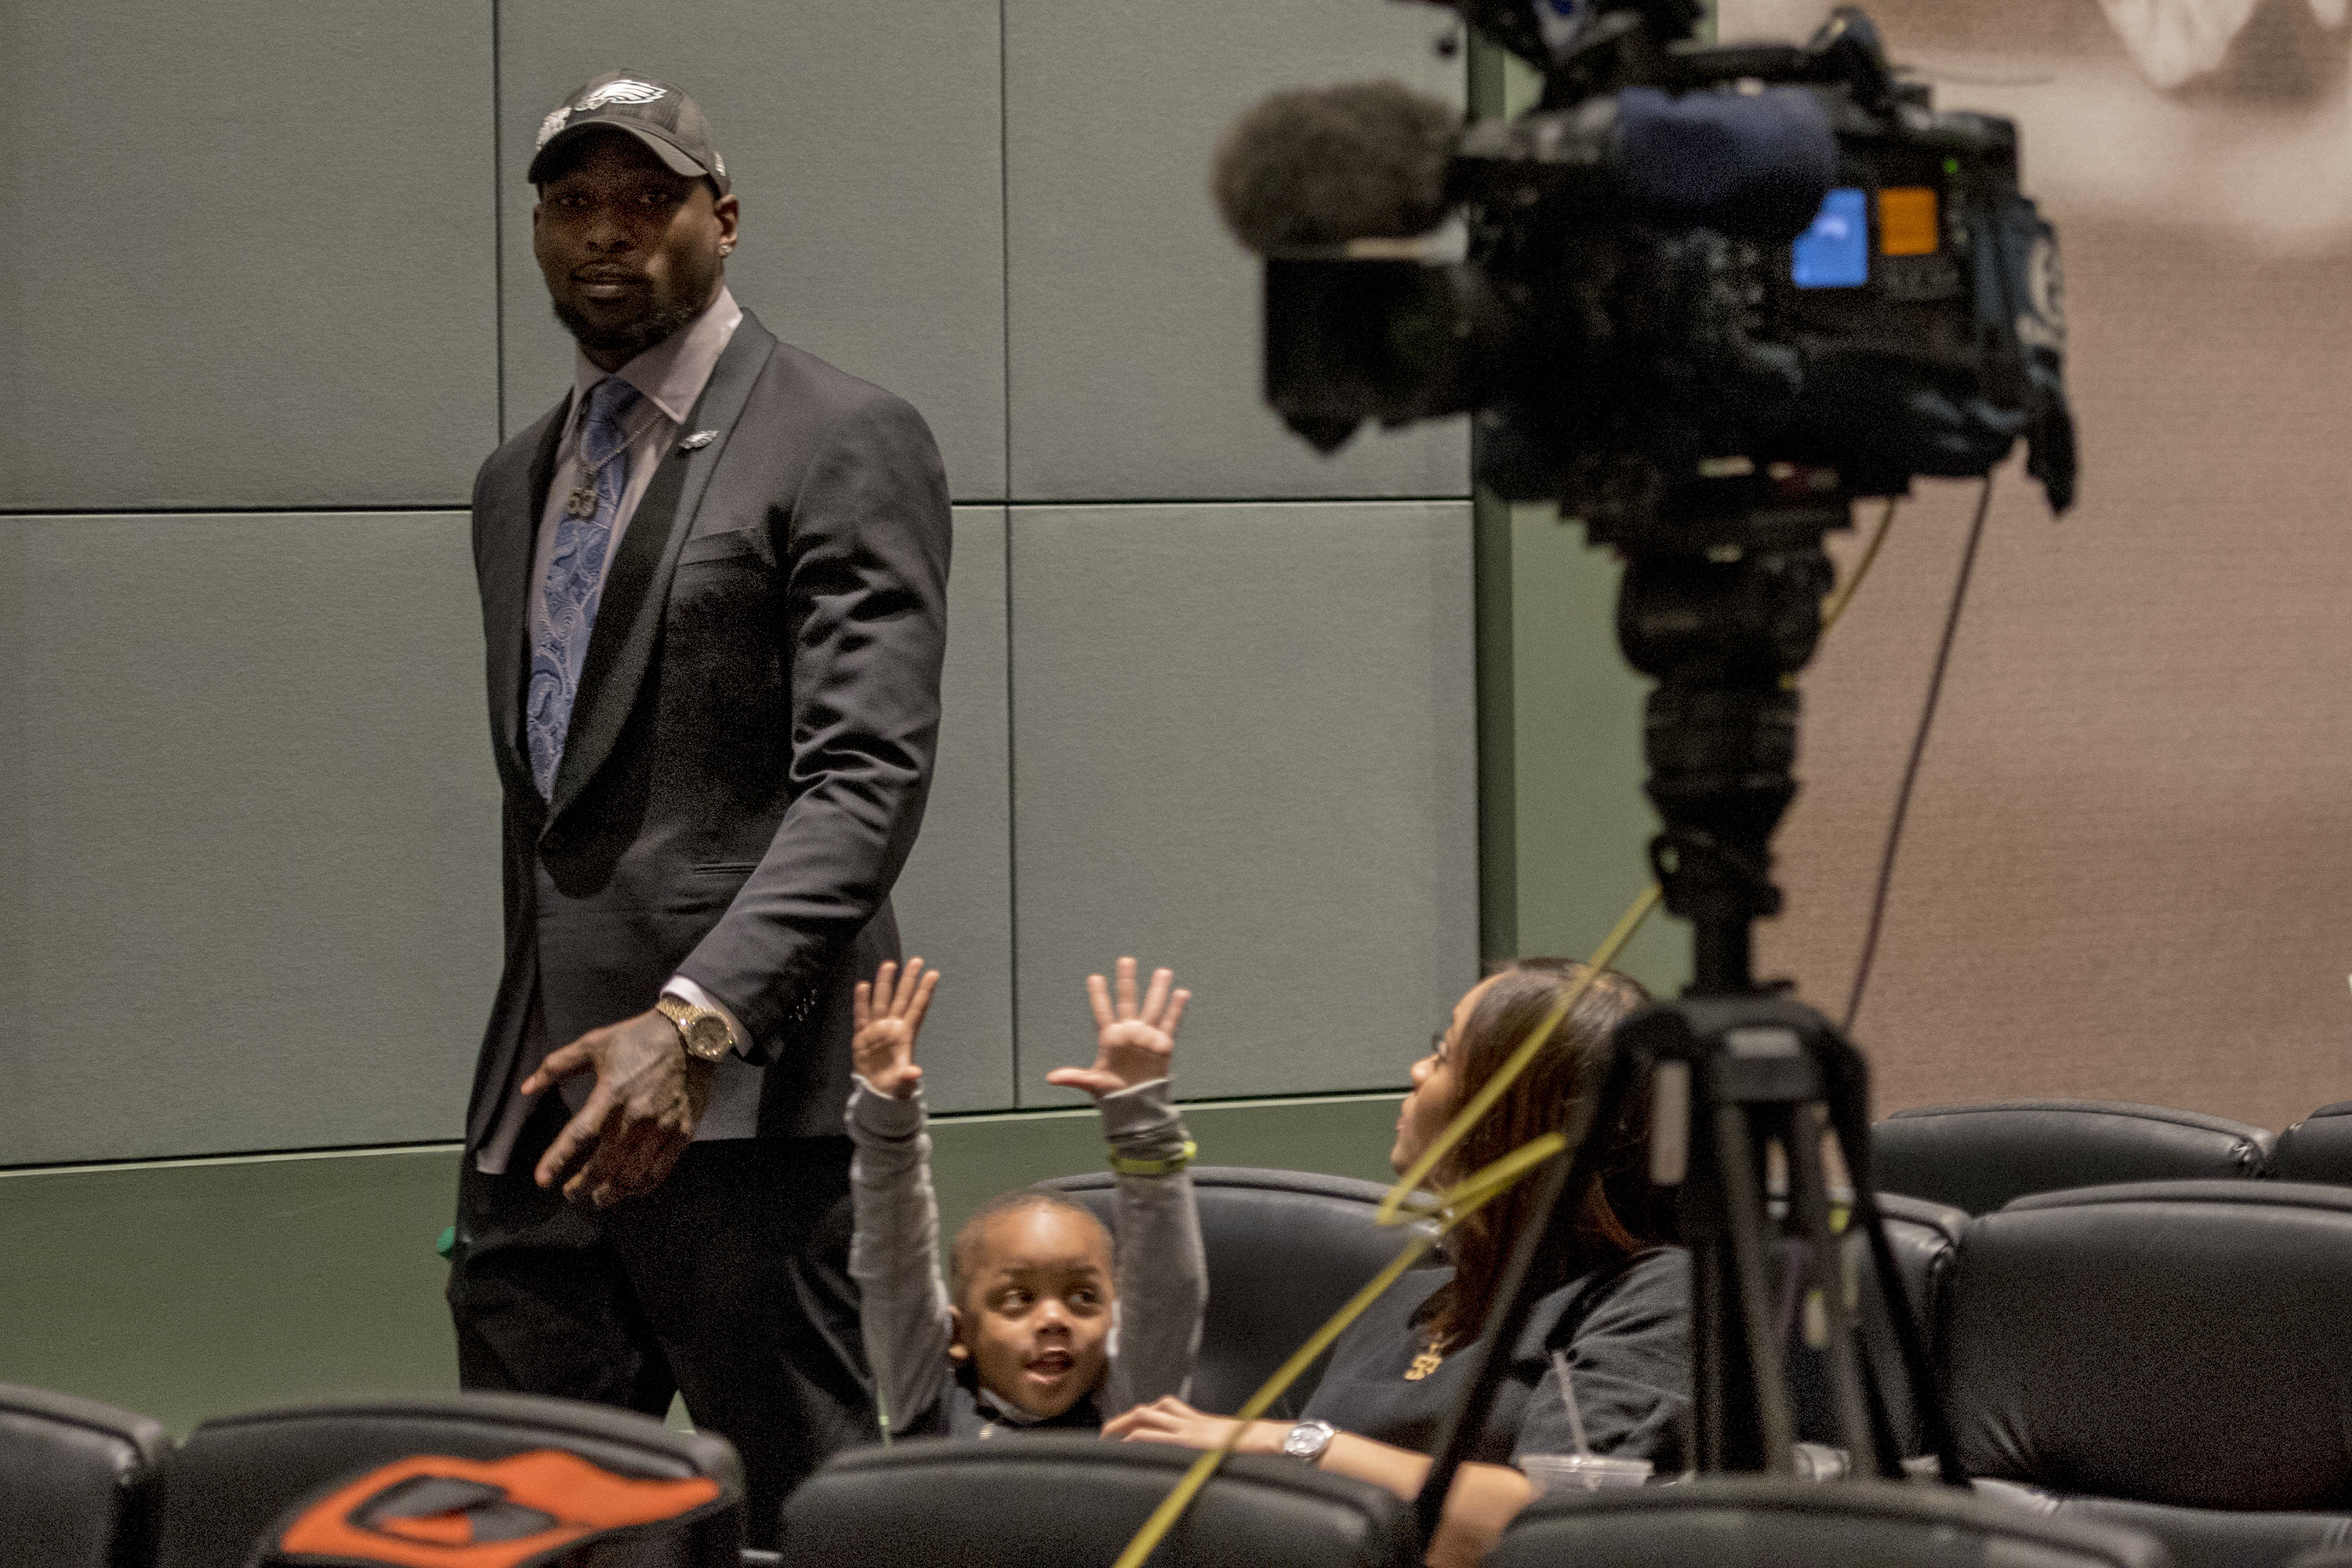 Eagles´ linebacker Nigel Bradham arrives to talk about his contract extension while is son, Nazir, celebrates and his wife, Nia Davis, watches.